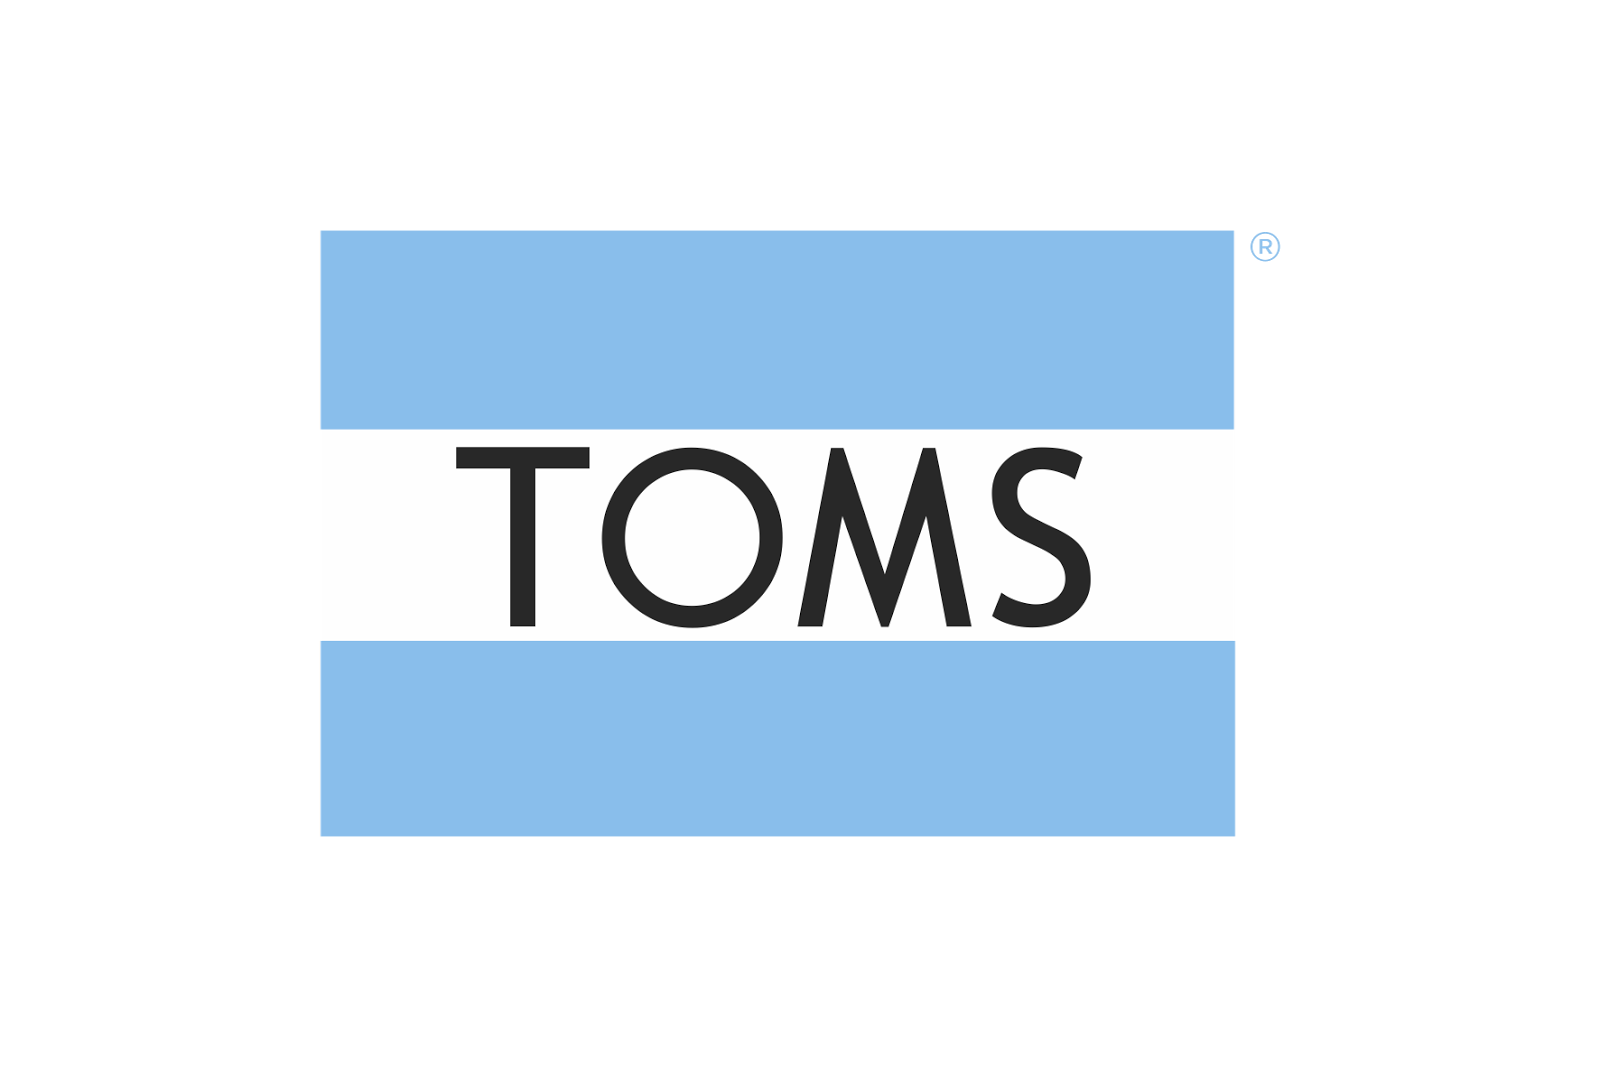 Toms eyeglasses and sunglasses logo